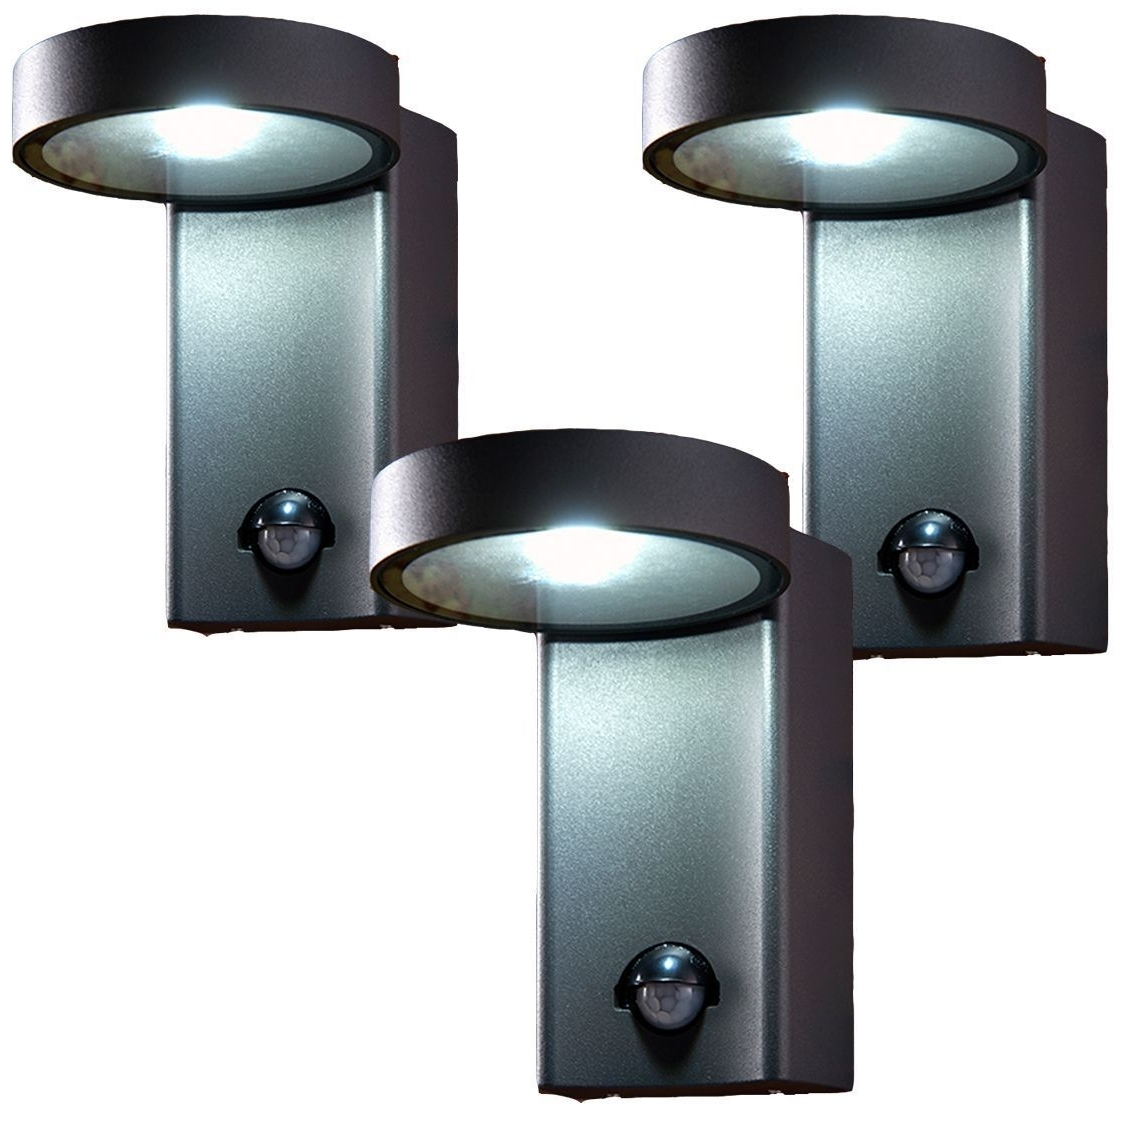 Outdoor Wall Lights With Pir With Fashionable 3 X Saxby 67696 Oreti Pir Dark Matt Anthracite 10W Ip44 Outdoor Wall (View 5 of 20)